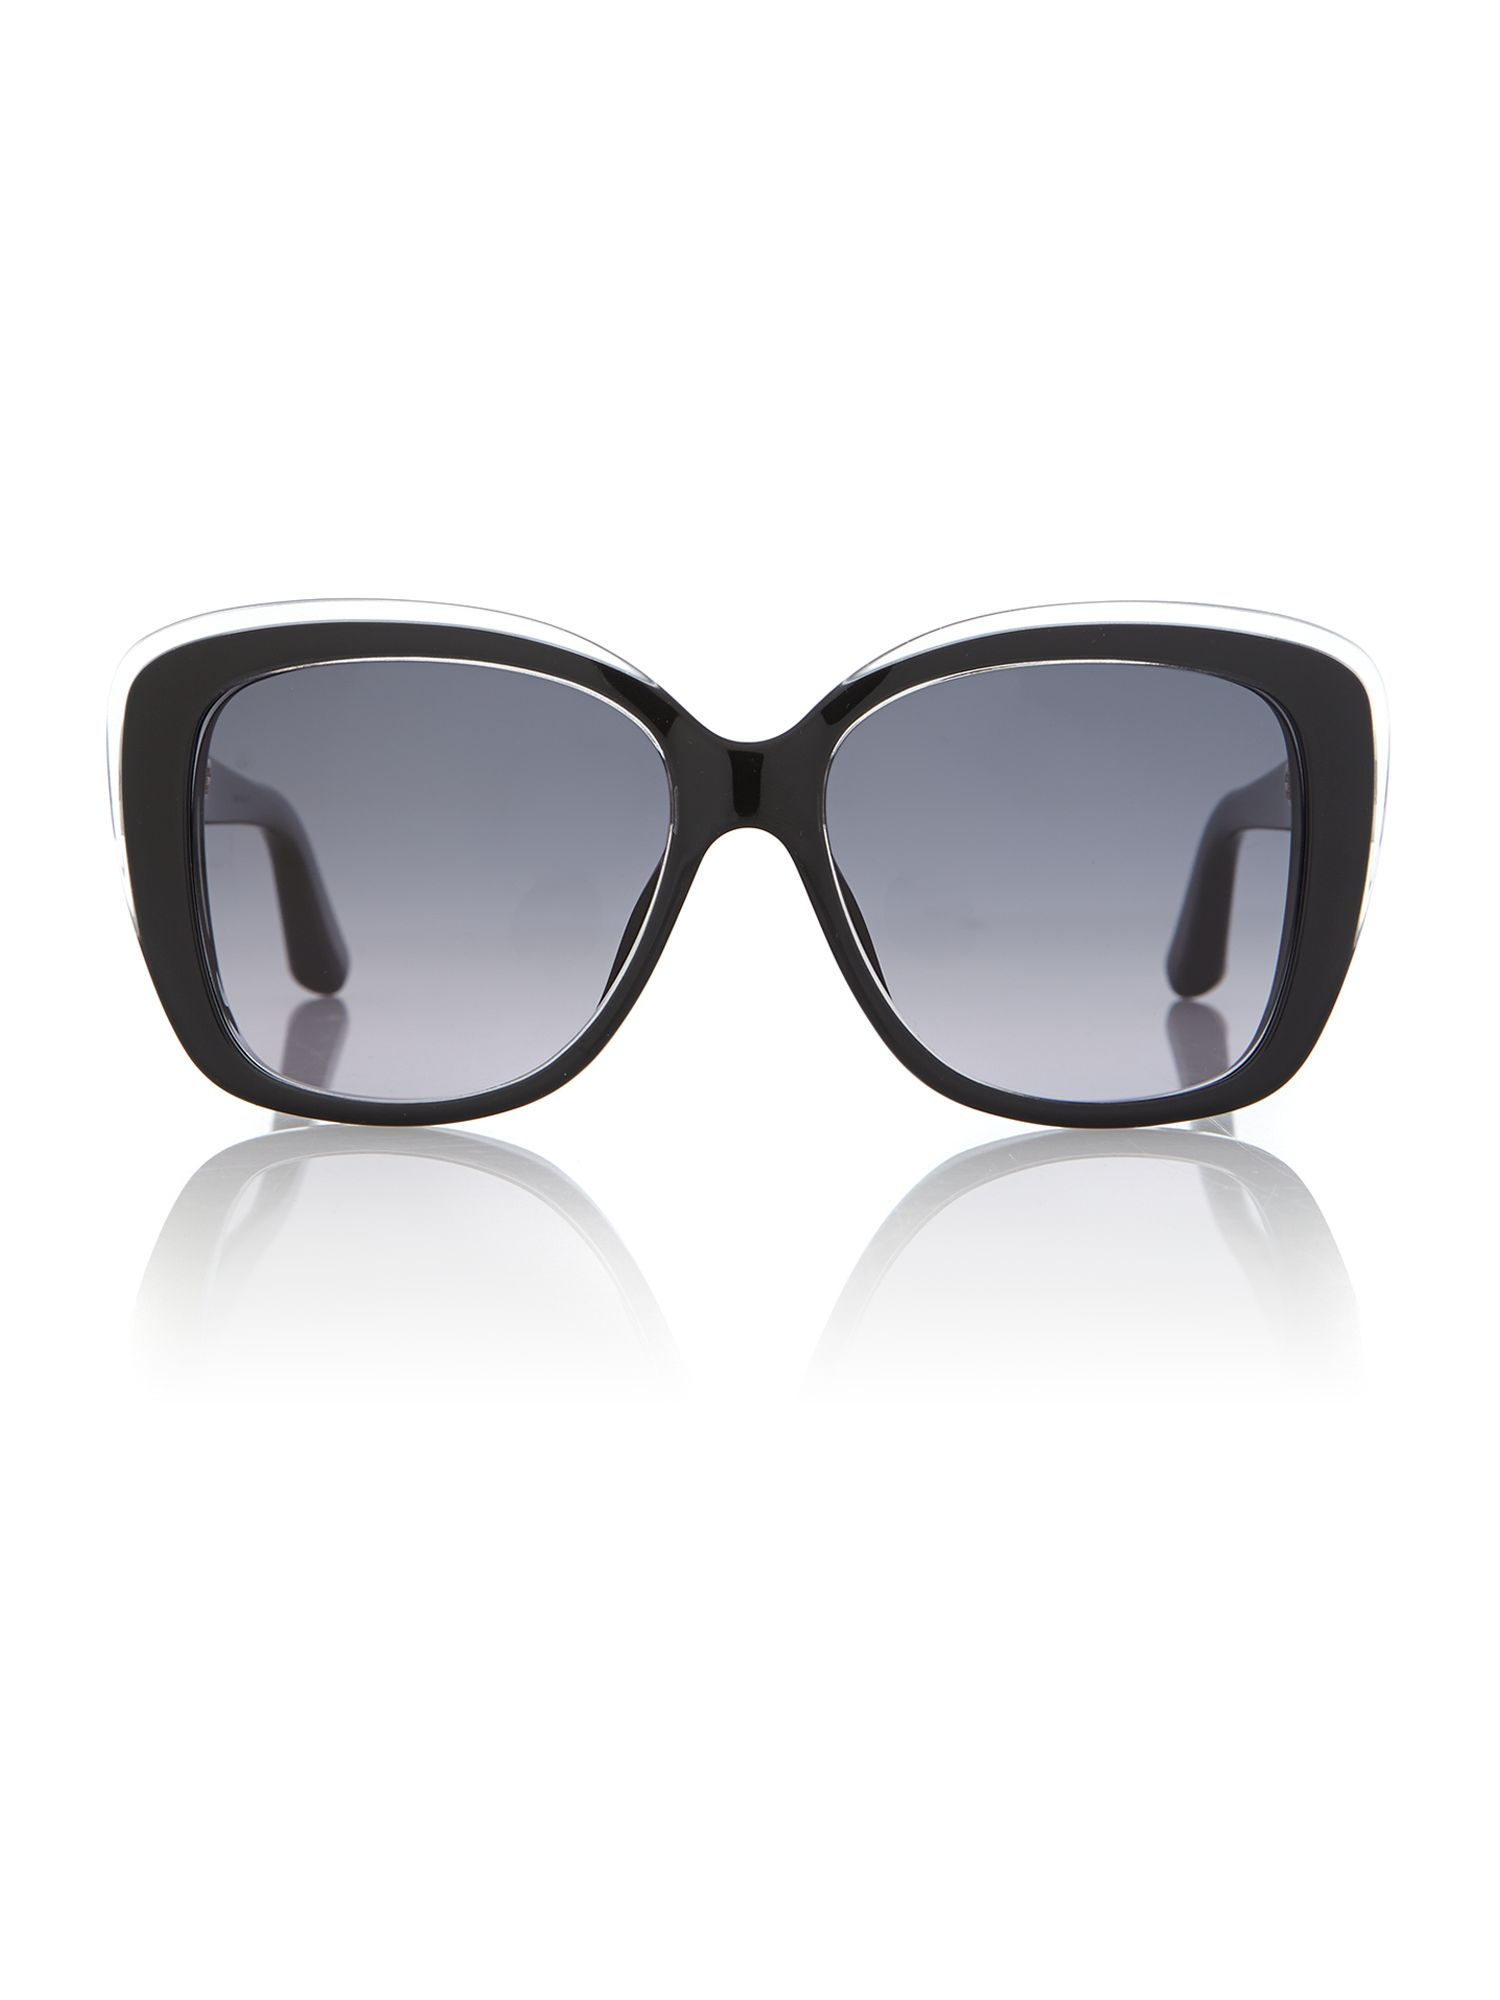 Diorpromesse2 ladies rectangle sunglasses